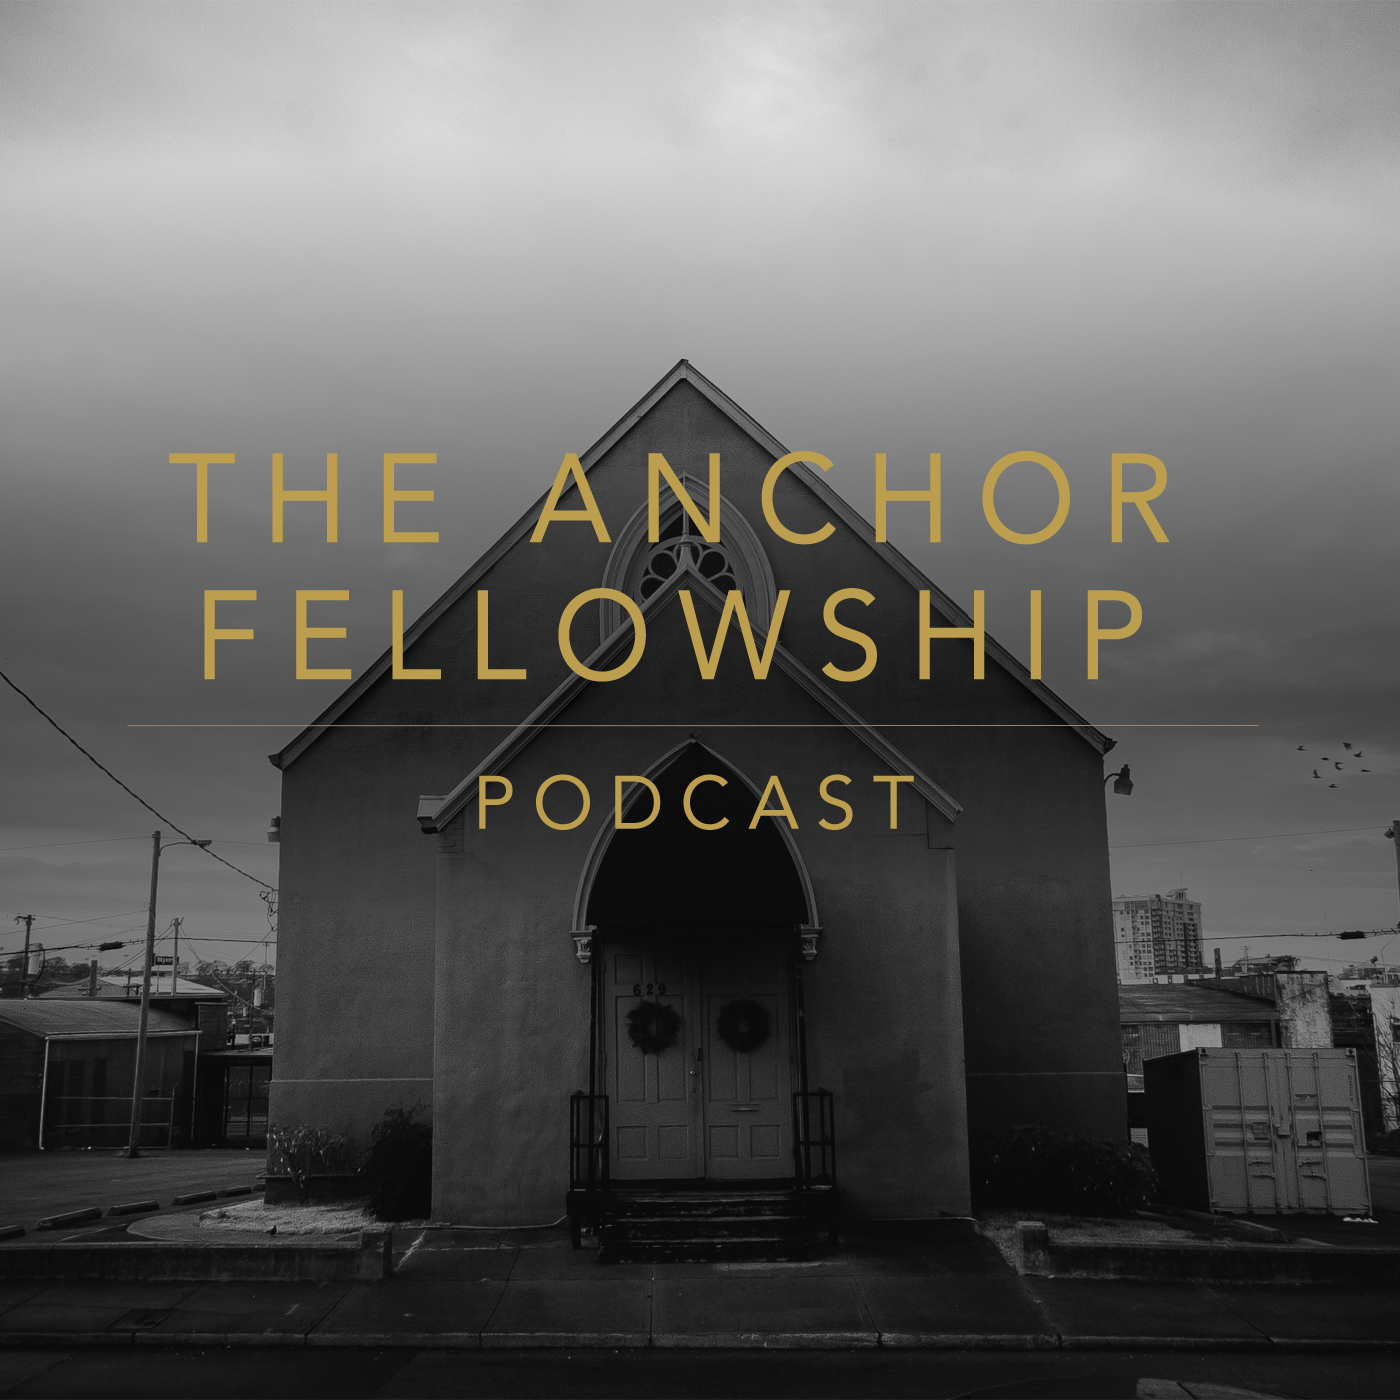 Podcasts - The Anchor Fellowship